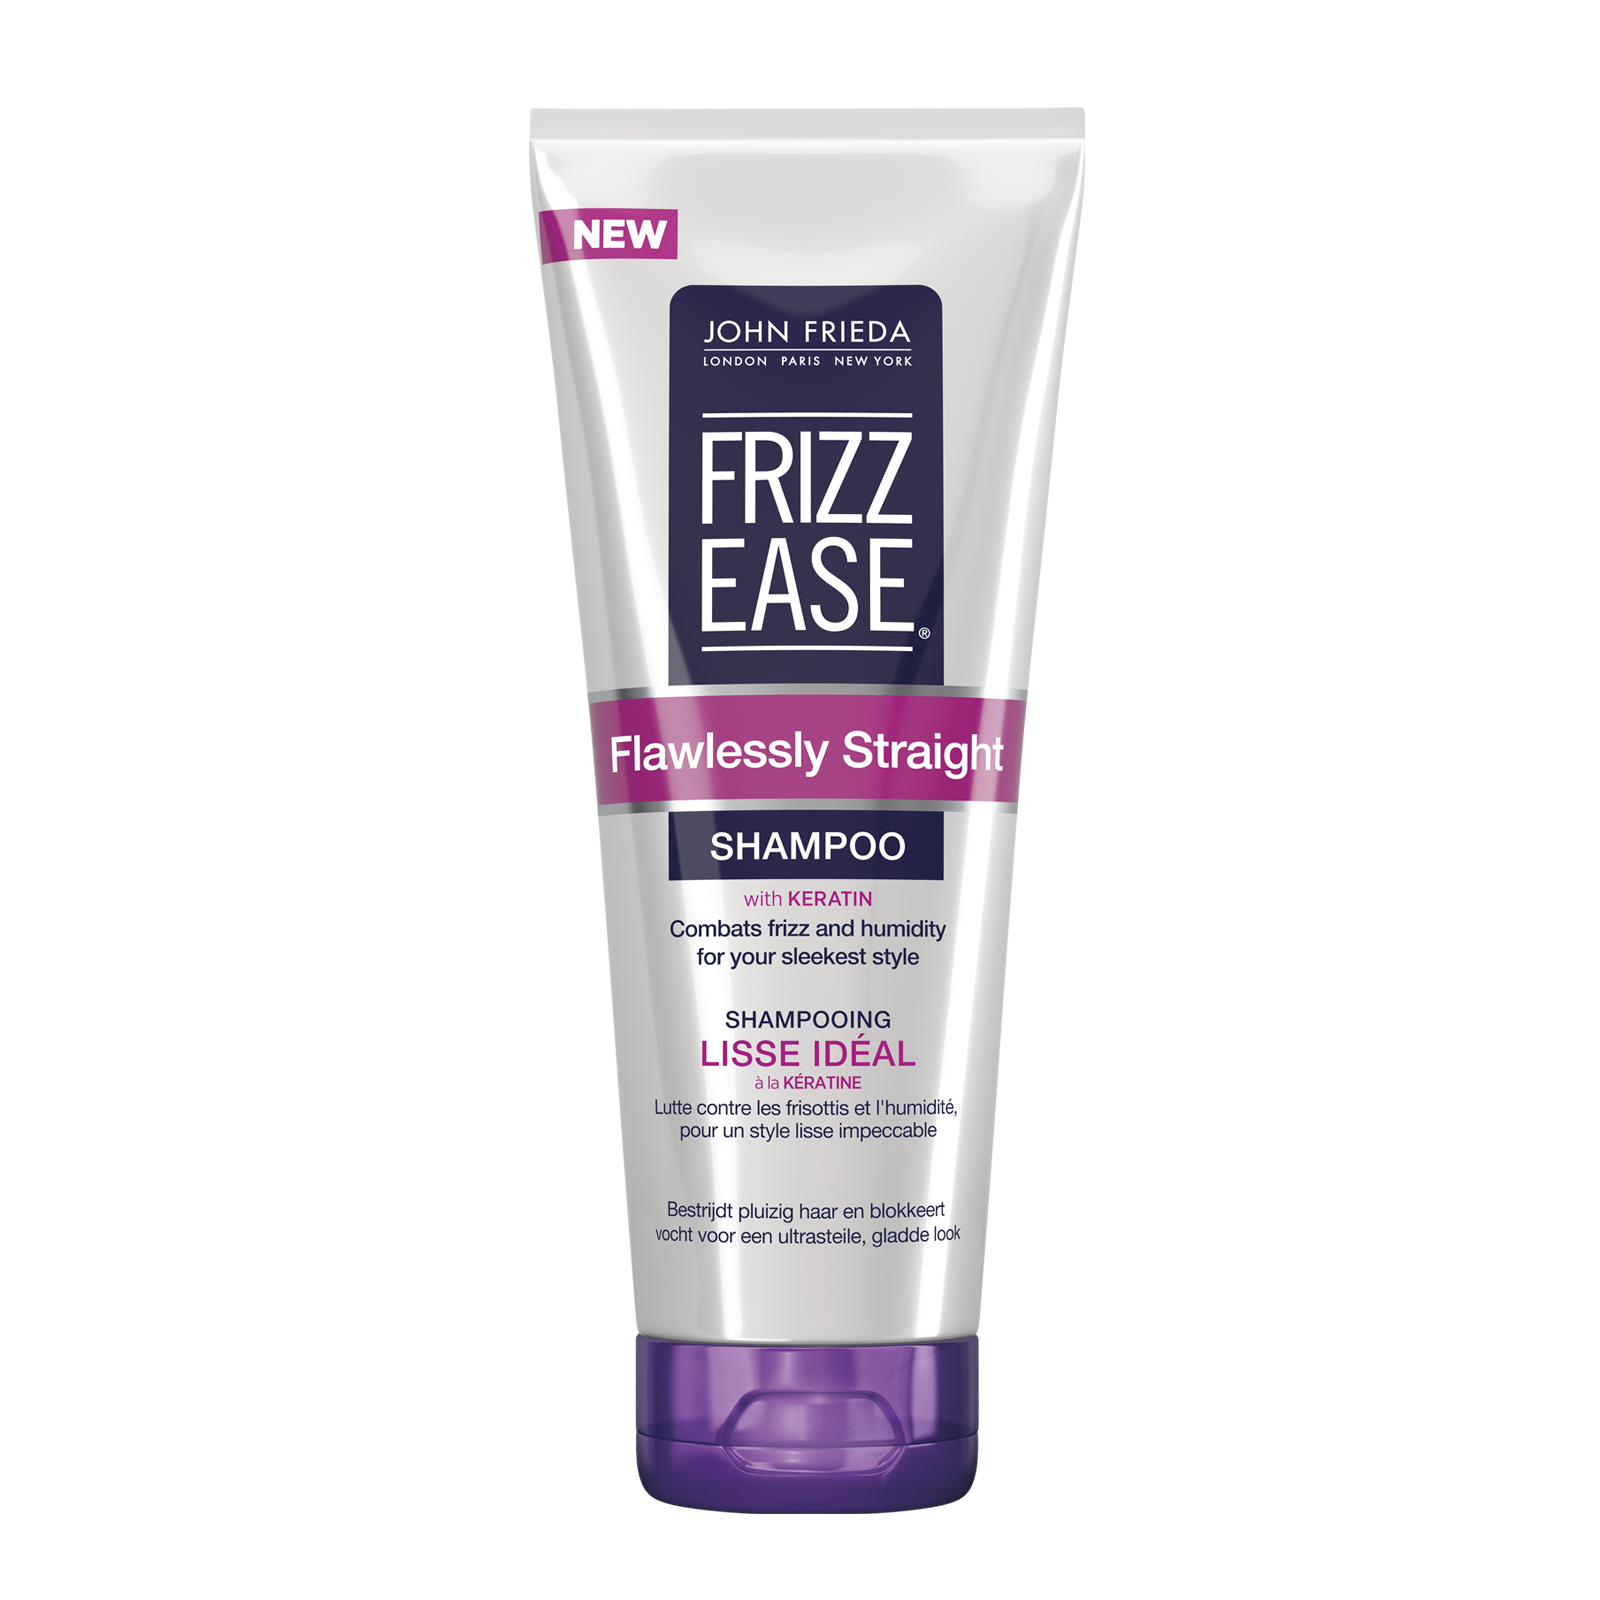 john frieda frizz ease flawlessly straight shampoo 250ml. Black Bedroom Furniture Sets. Home Design Ideas